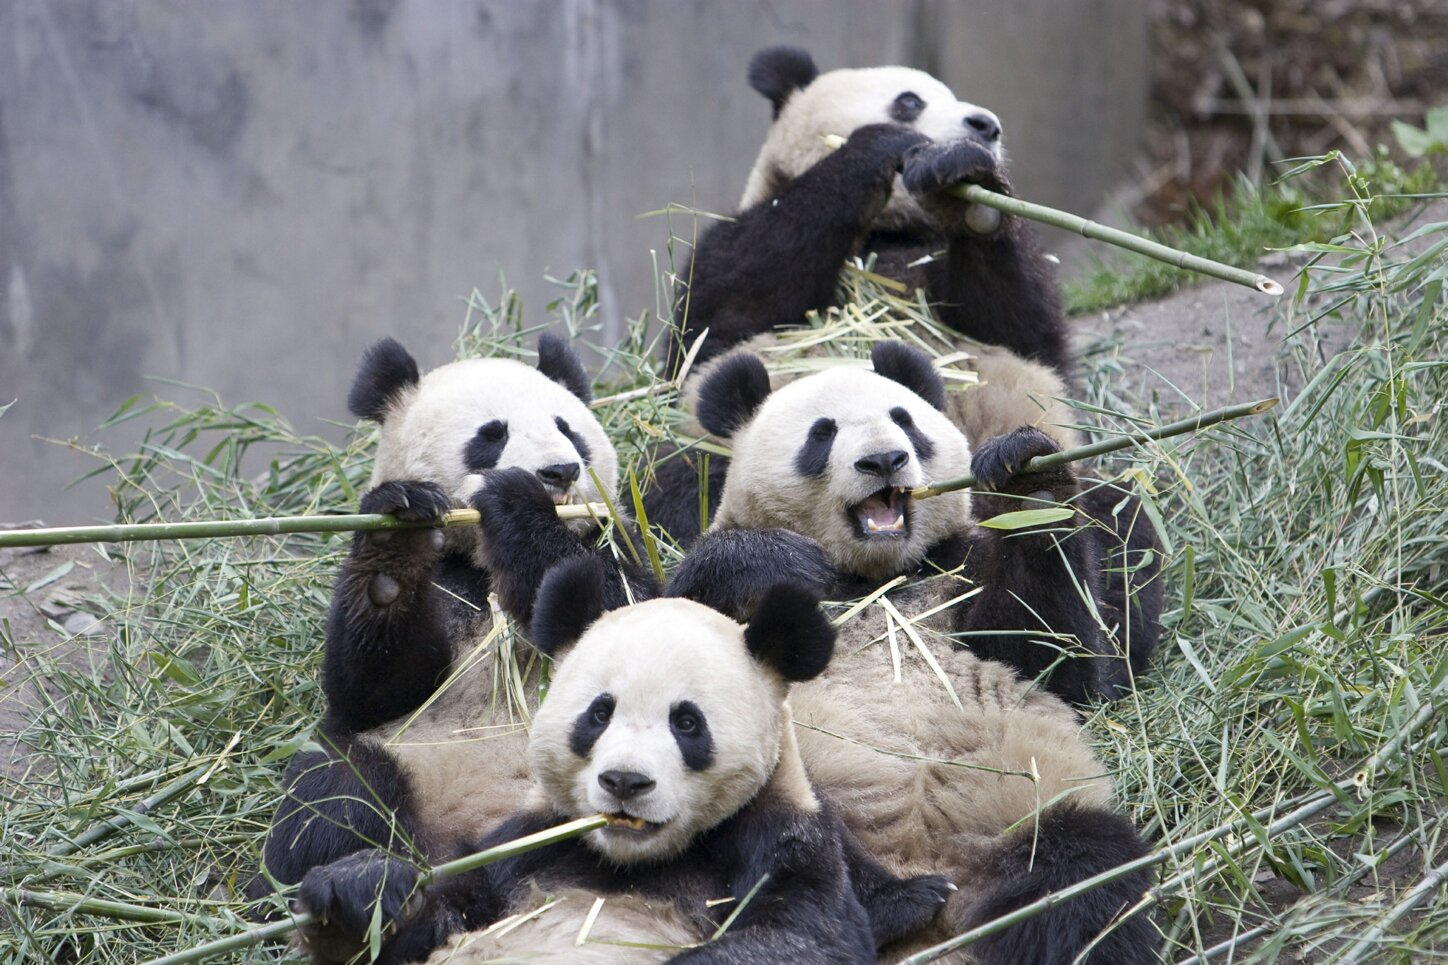 01-giant-panda-group-eating-bamboo.jpg